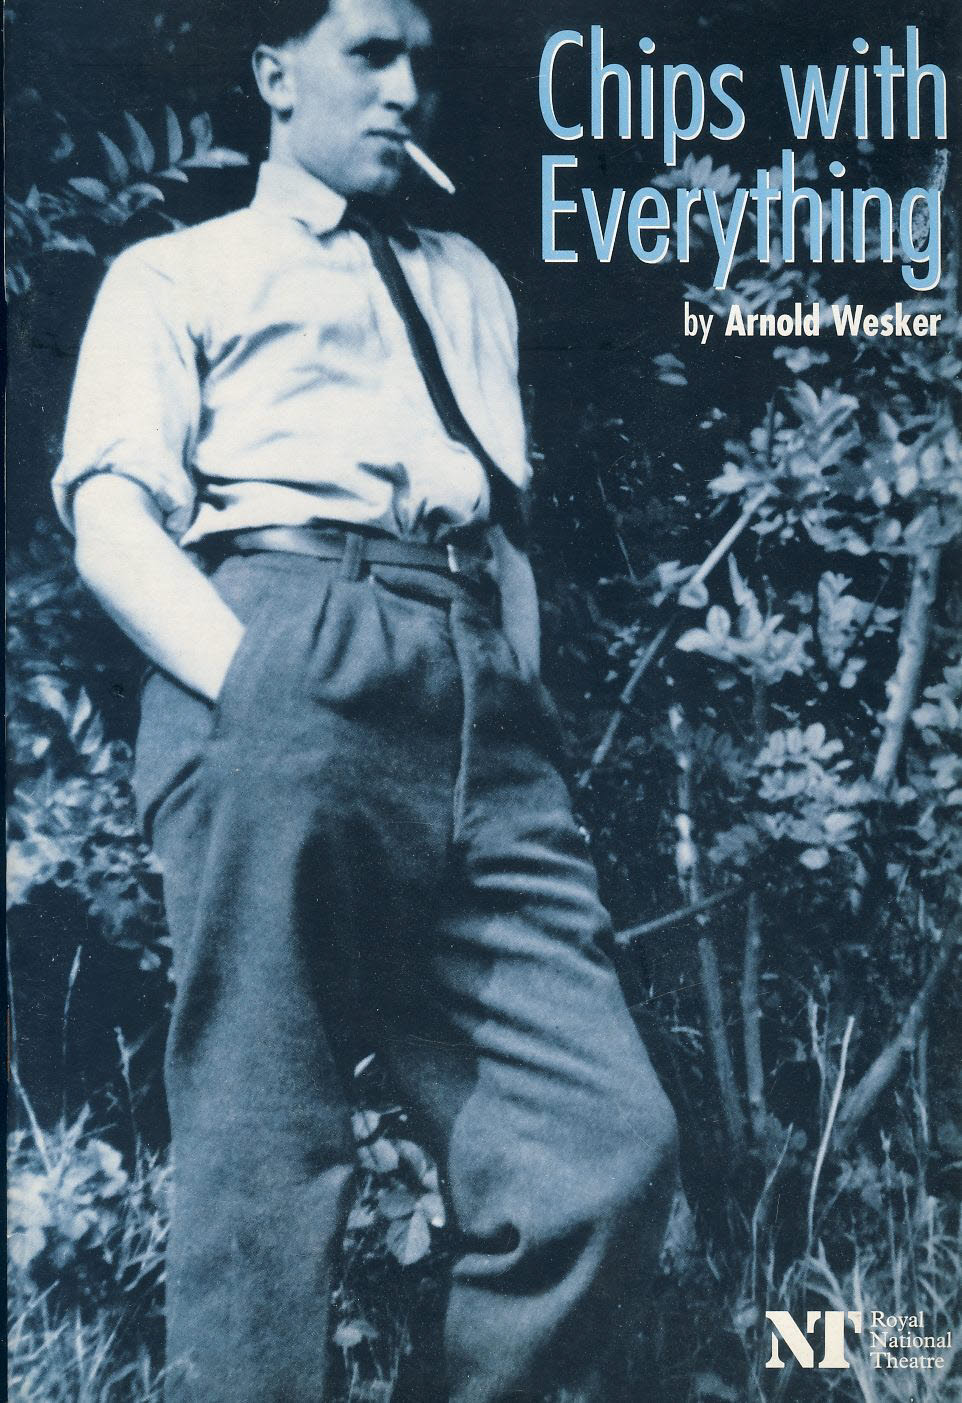 Chips with Everything by Arnold Wesker 1997 NT Royal National Theatre Programme refb101051 Pre-owned Programme in Good Condition. Measures approx 16.5cm x 23.5cm